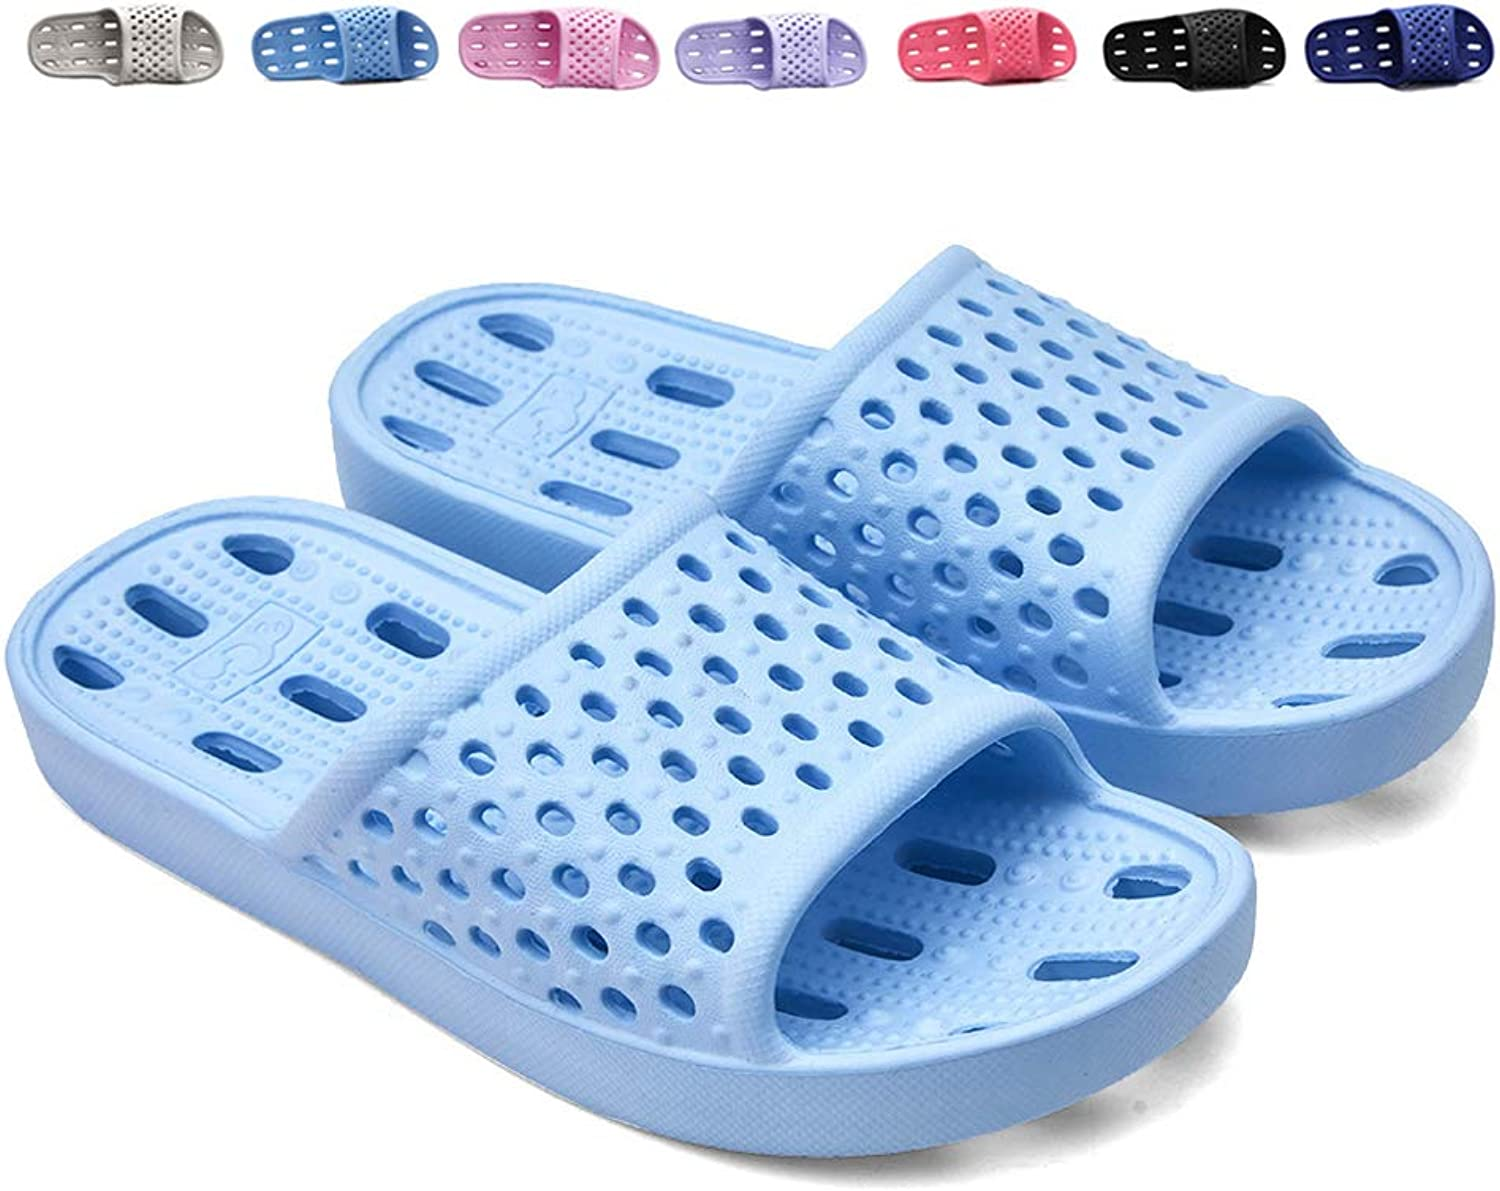 XUANHSU Shower shoes for Mens and Womens Bathroom Slippers Non Slip Soft Sandals Swimming Water shoes